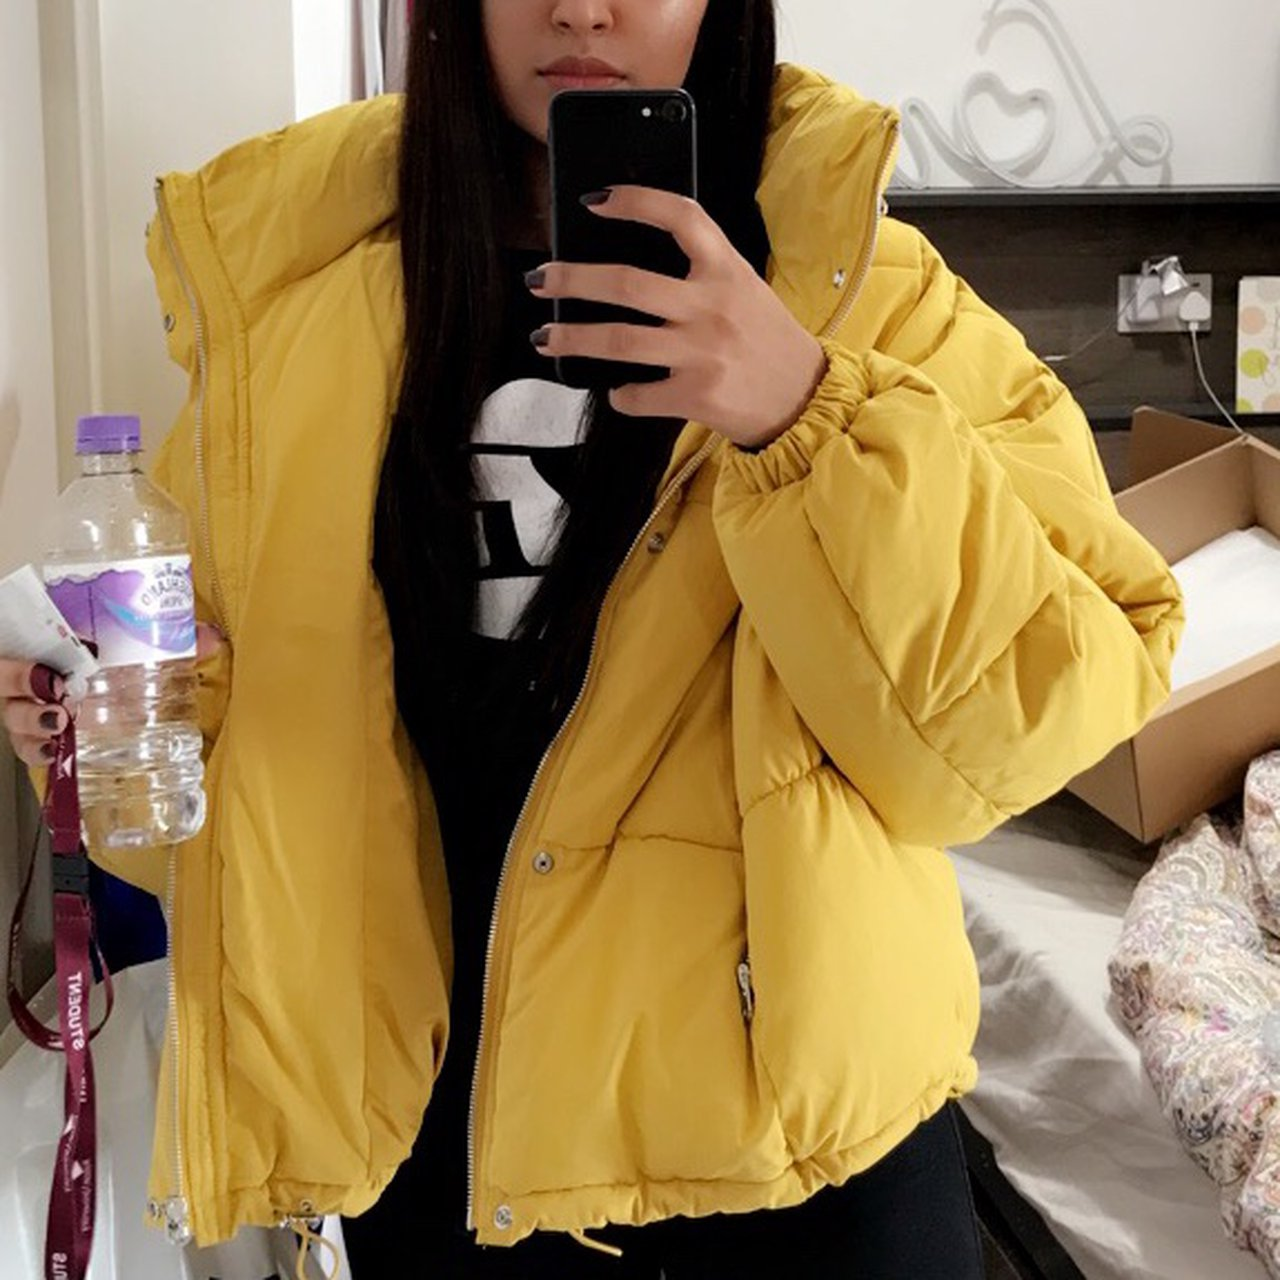 a3359a38 *free P&P* Zara TRF yellow puffer jacket In perfect only - Depop